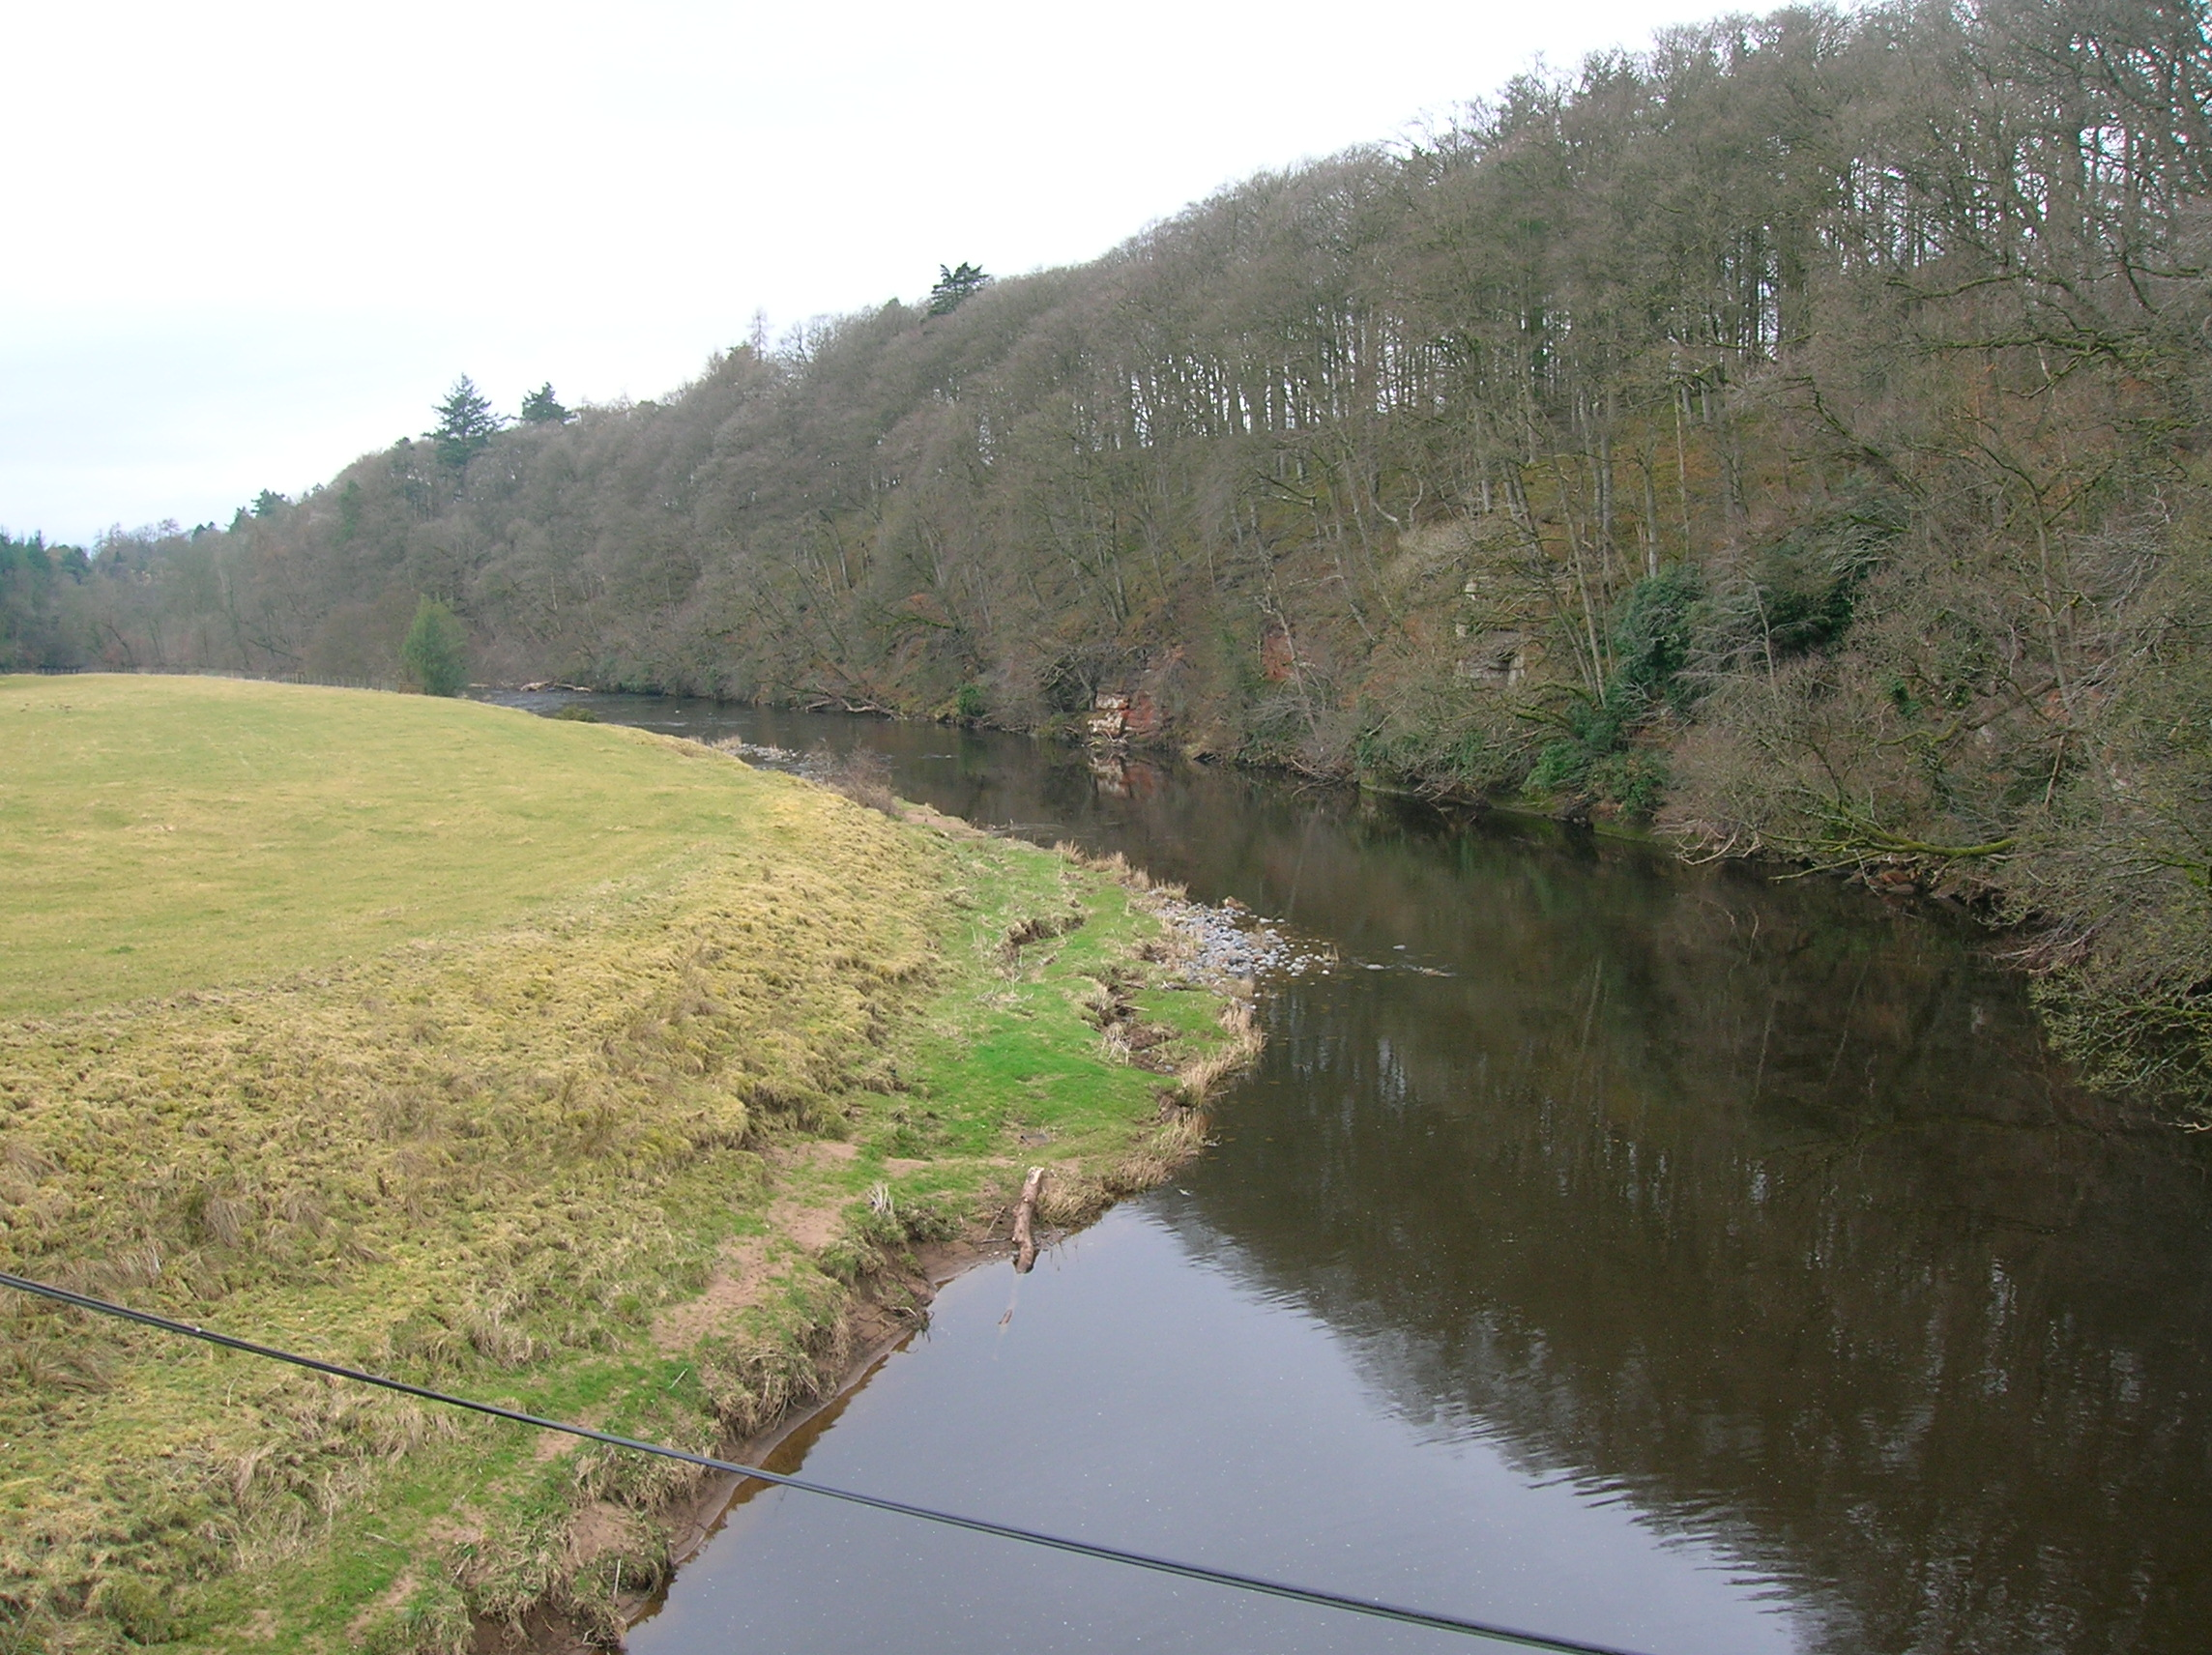 File:Holm on the River Ayr, where Robert Burns wrote 'Man